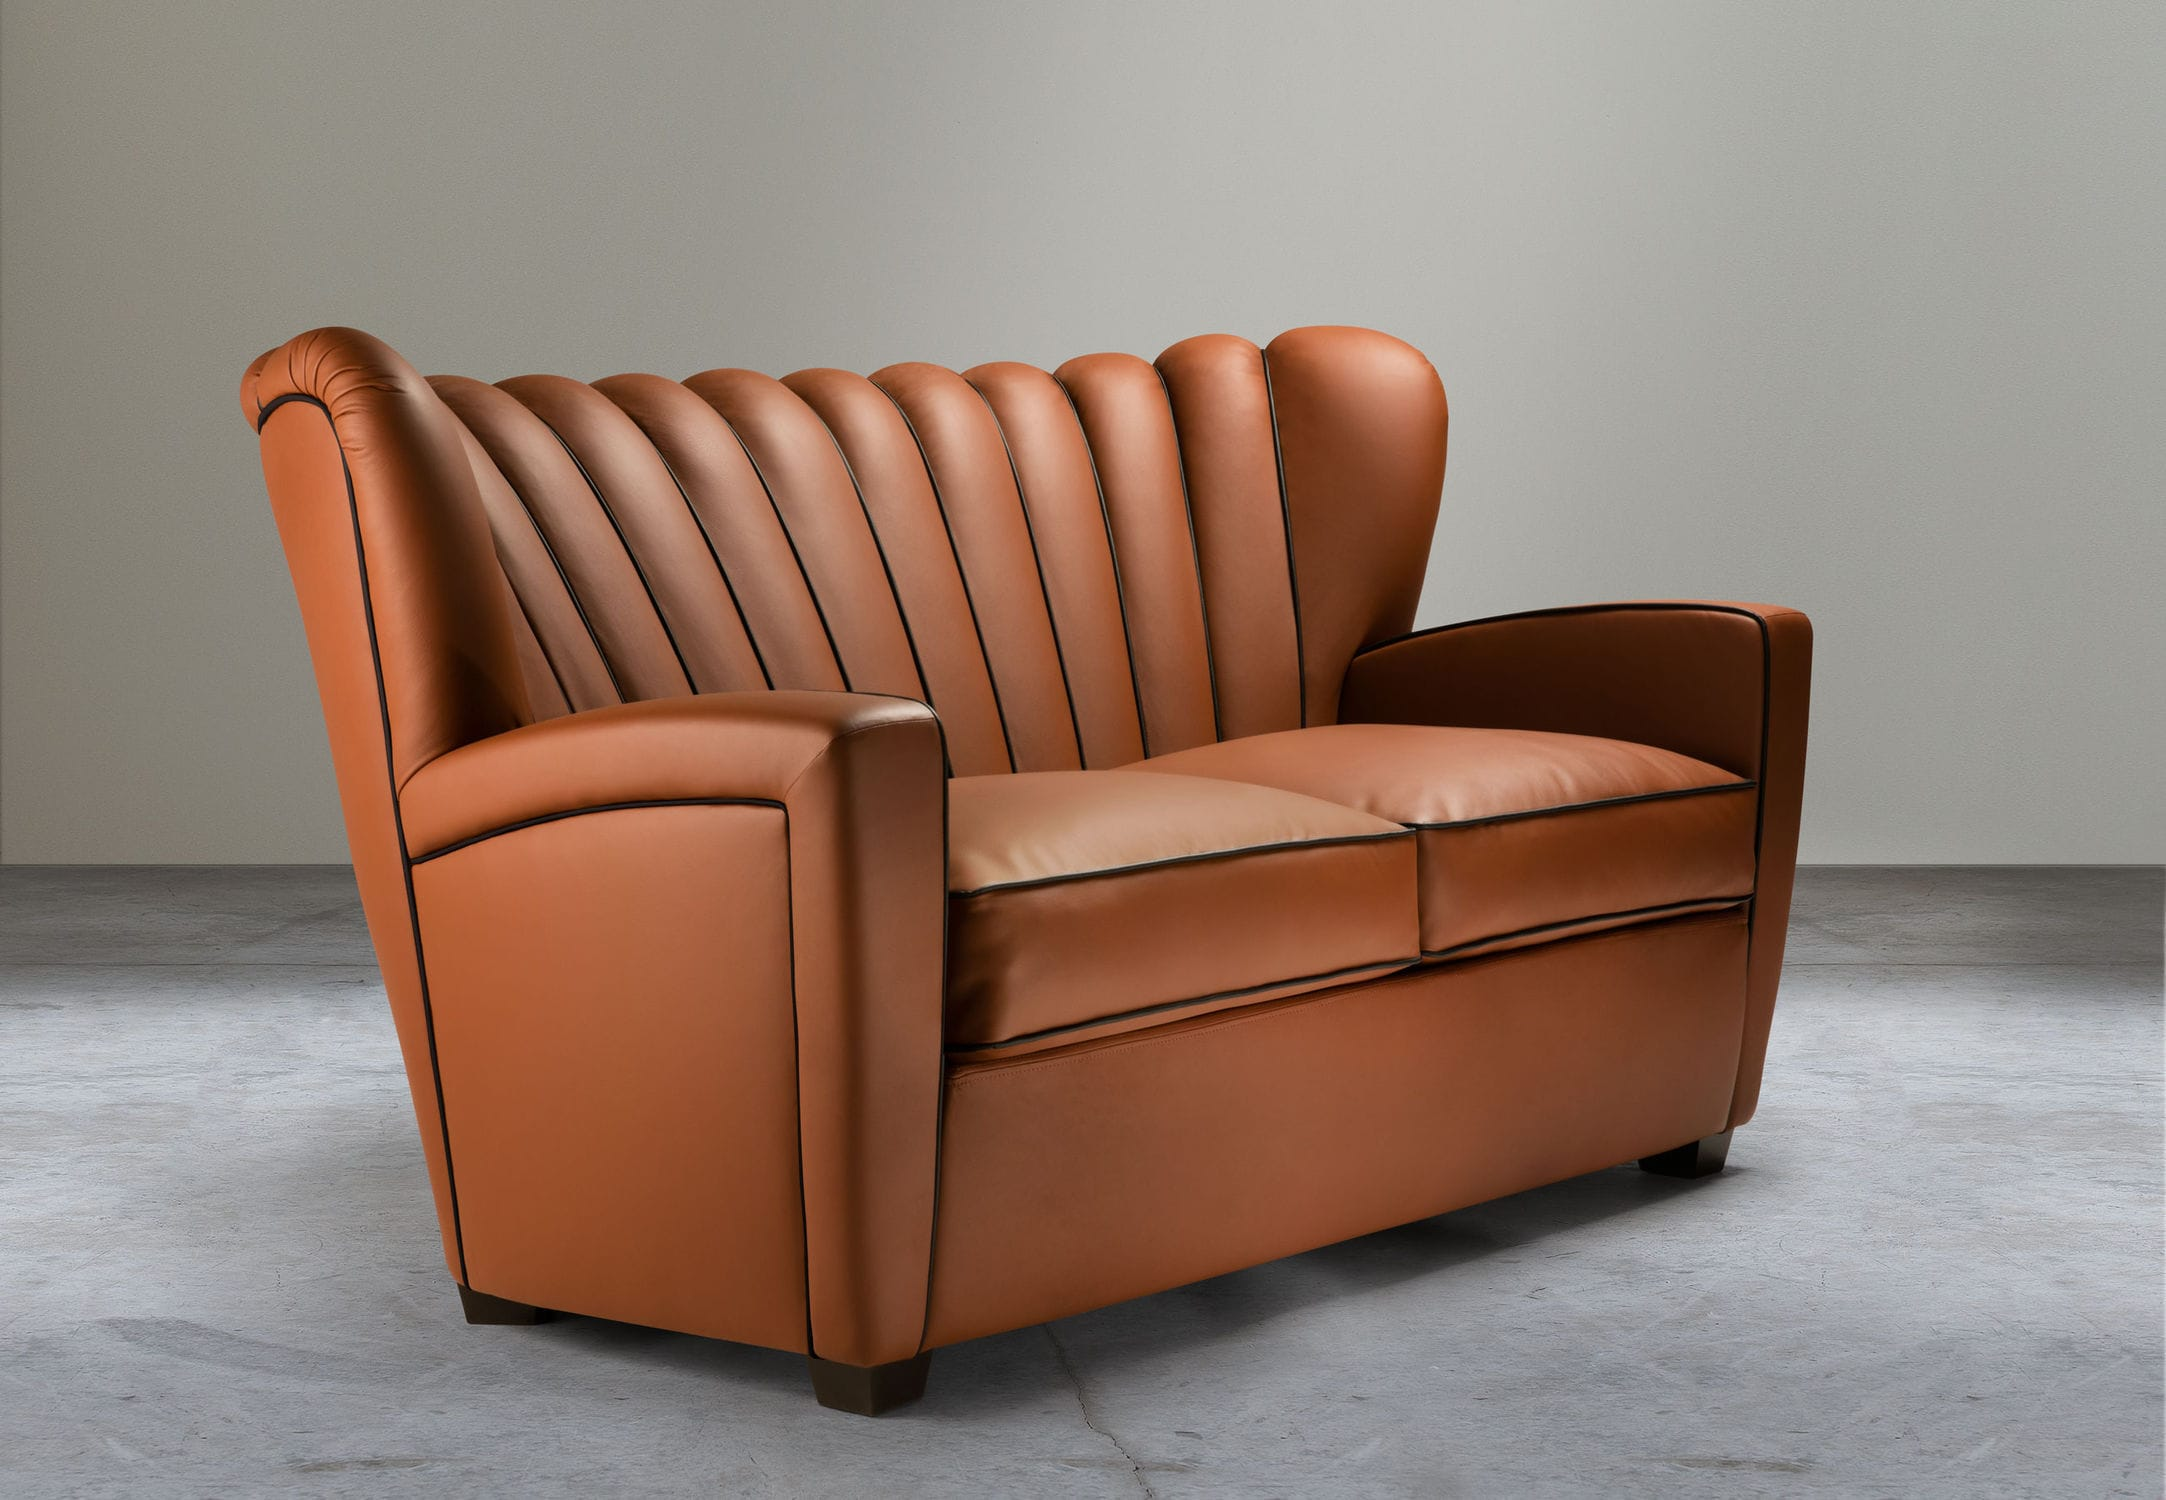 Contemporary Sofa / Fabric / Leather   ZARINA By Cesare Cassina